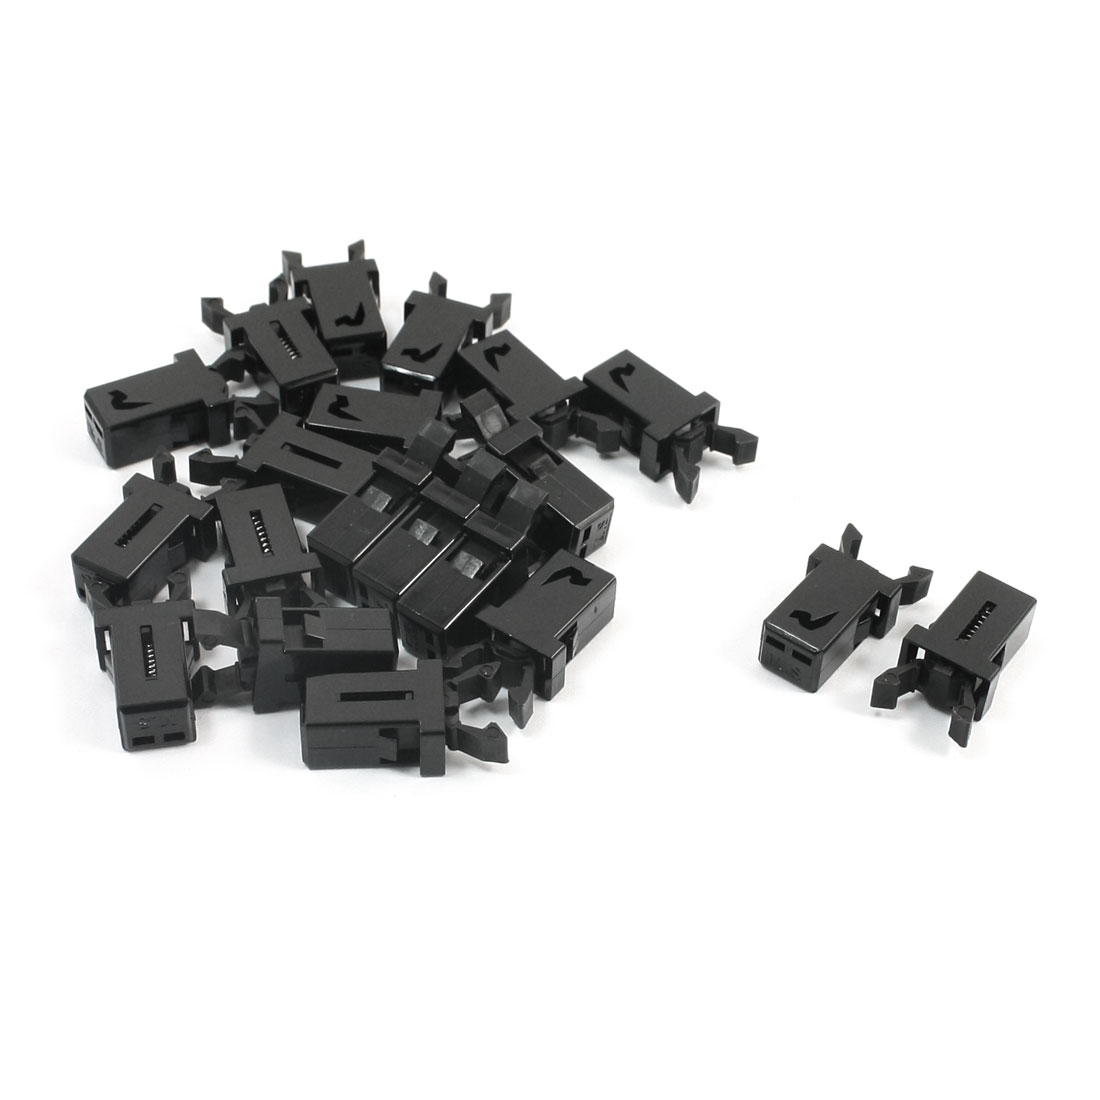 20 Pcs Panel Mount Spring Load Black Plastic Door Lock Toch Button Switch for RC Aircraft Airplane Model